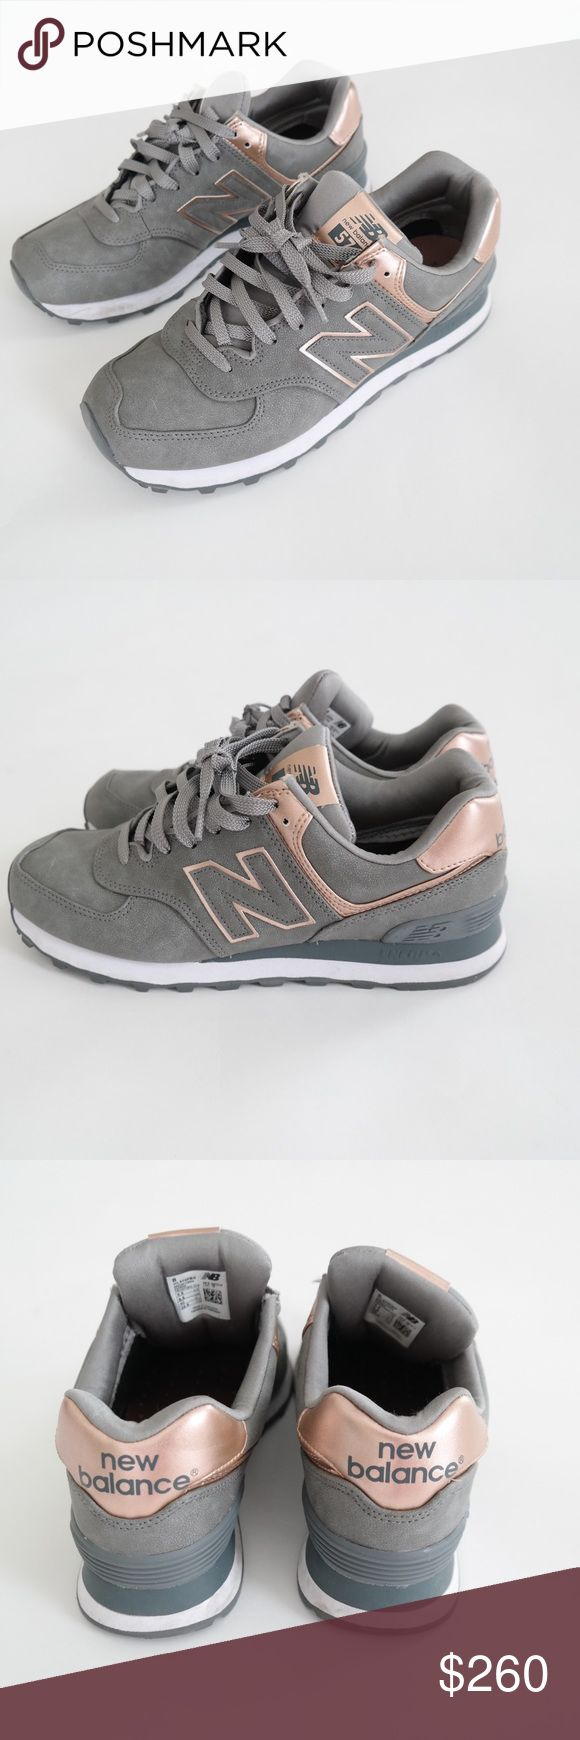 Limited Edition New Balance 574 in Rose Gold An amazing pair of limited edition New Balance 574 in grey with metallic rose gold. Worn only a handful of times, therefore in EXCELLENT condition. These are not available on the market anywhere! New Balance Shoes Sneakers